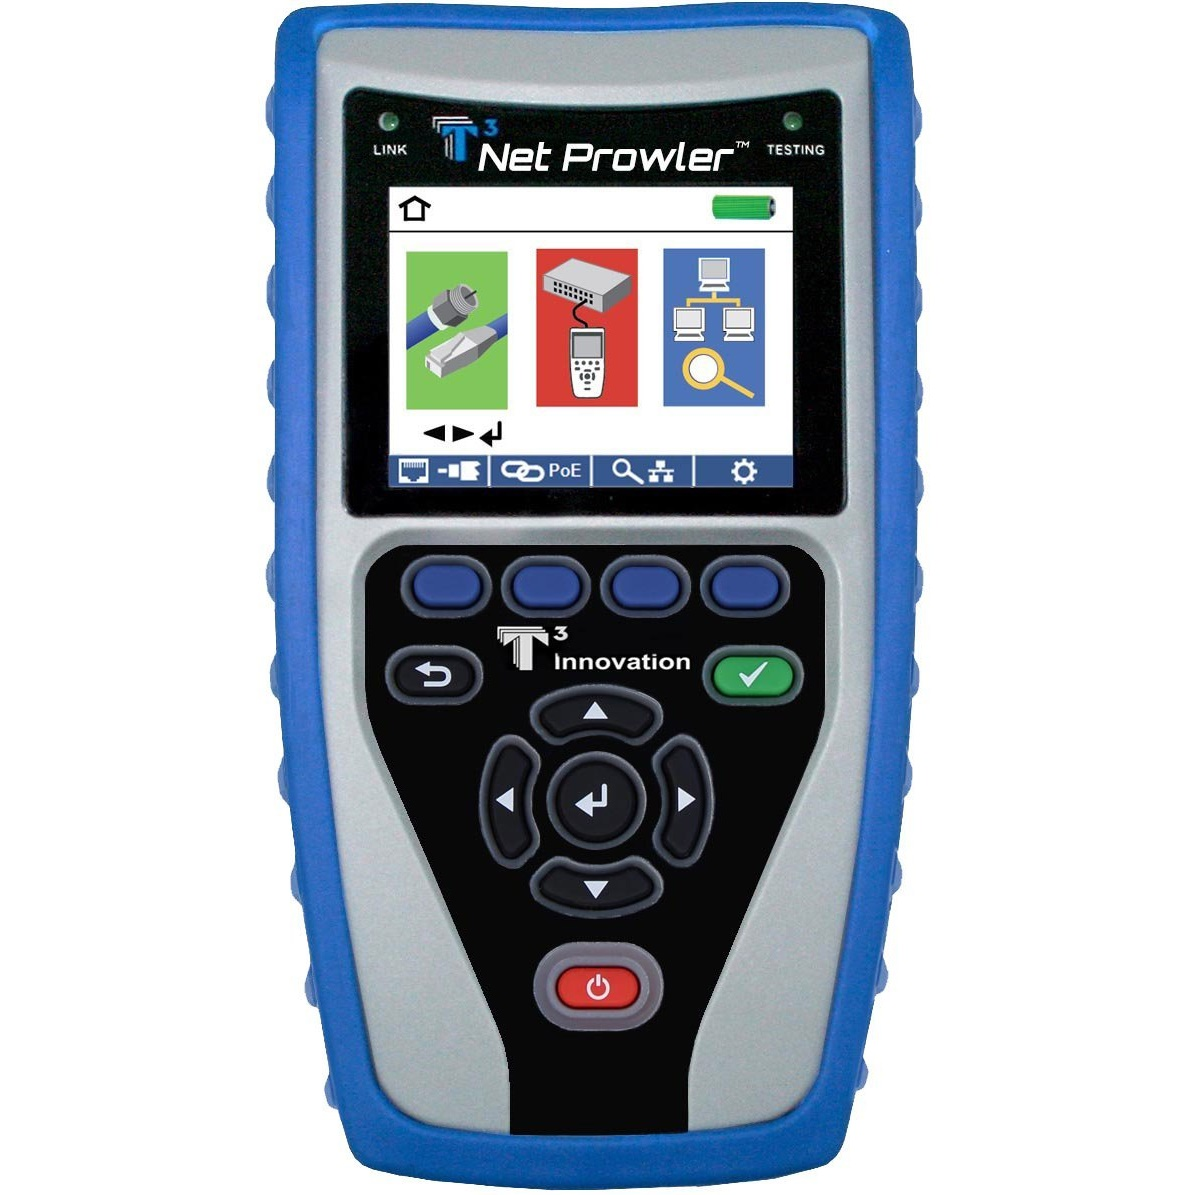 T3 Innovation NP800 Net Prowler Cabling and Advanced Network Tester